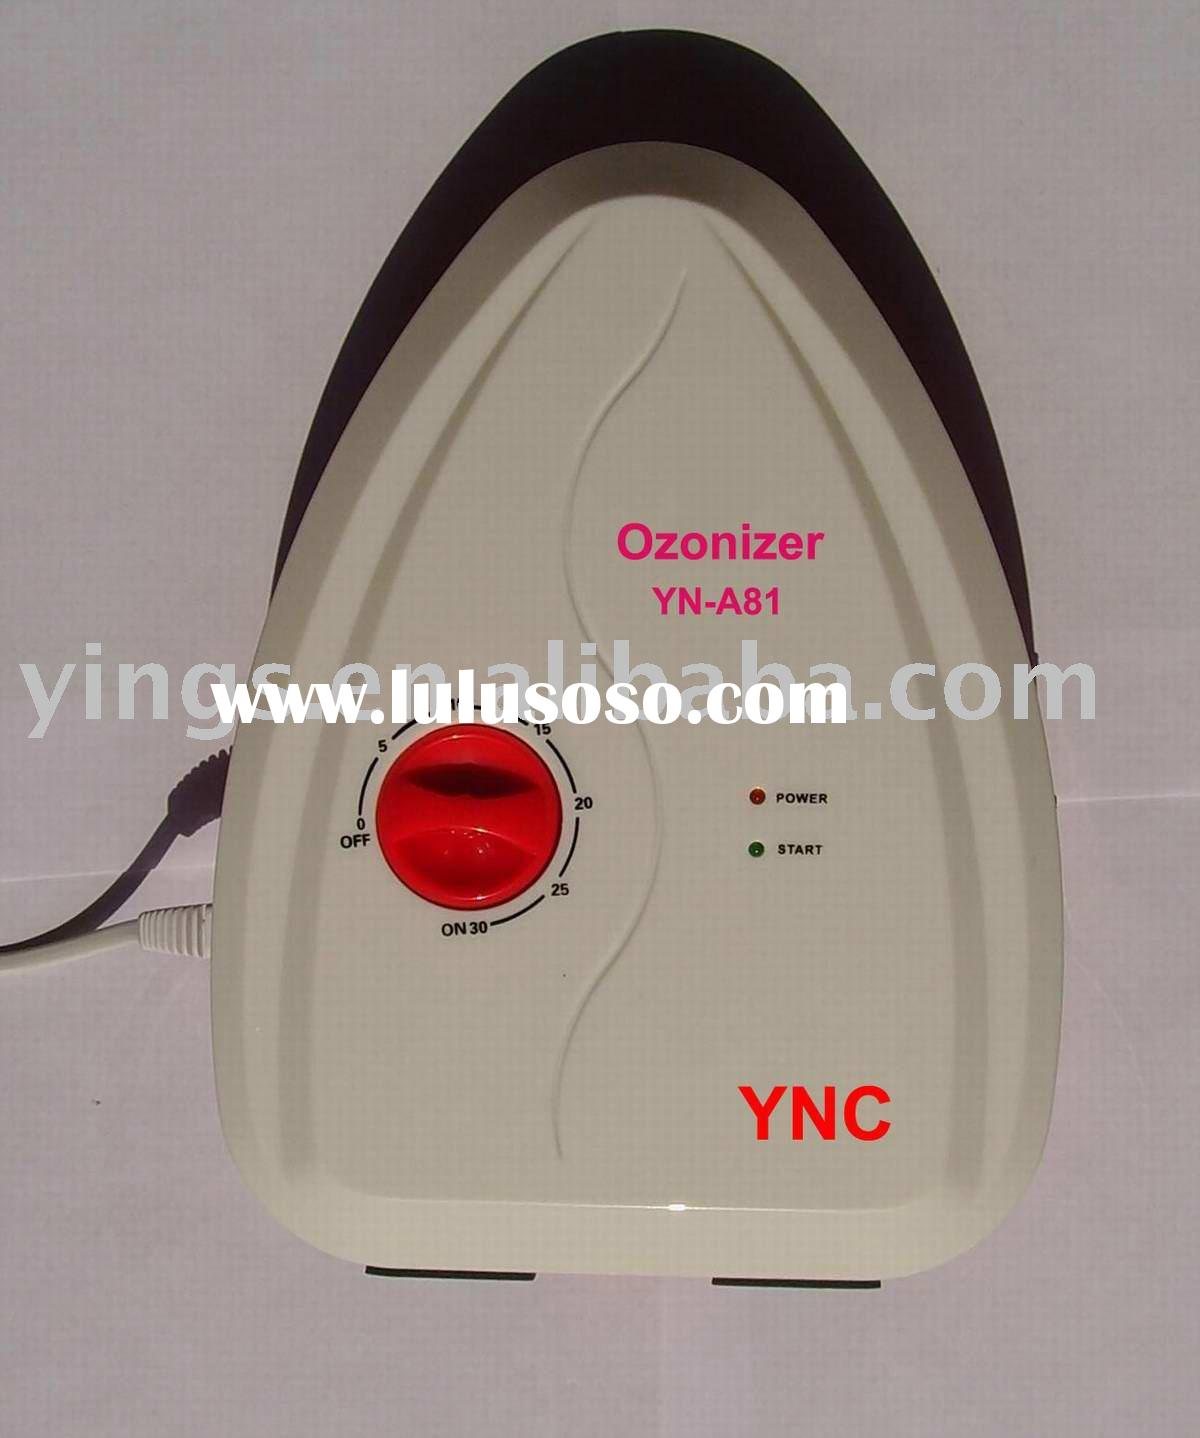 Ozonizer (Fruits and vegetables disinfection machine)